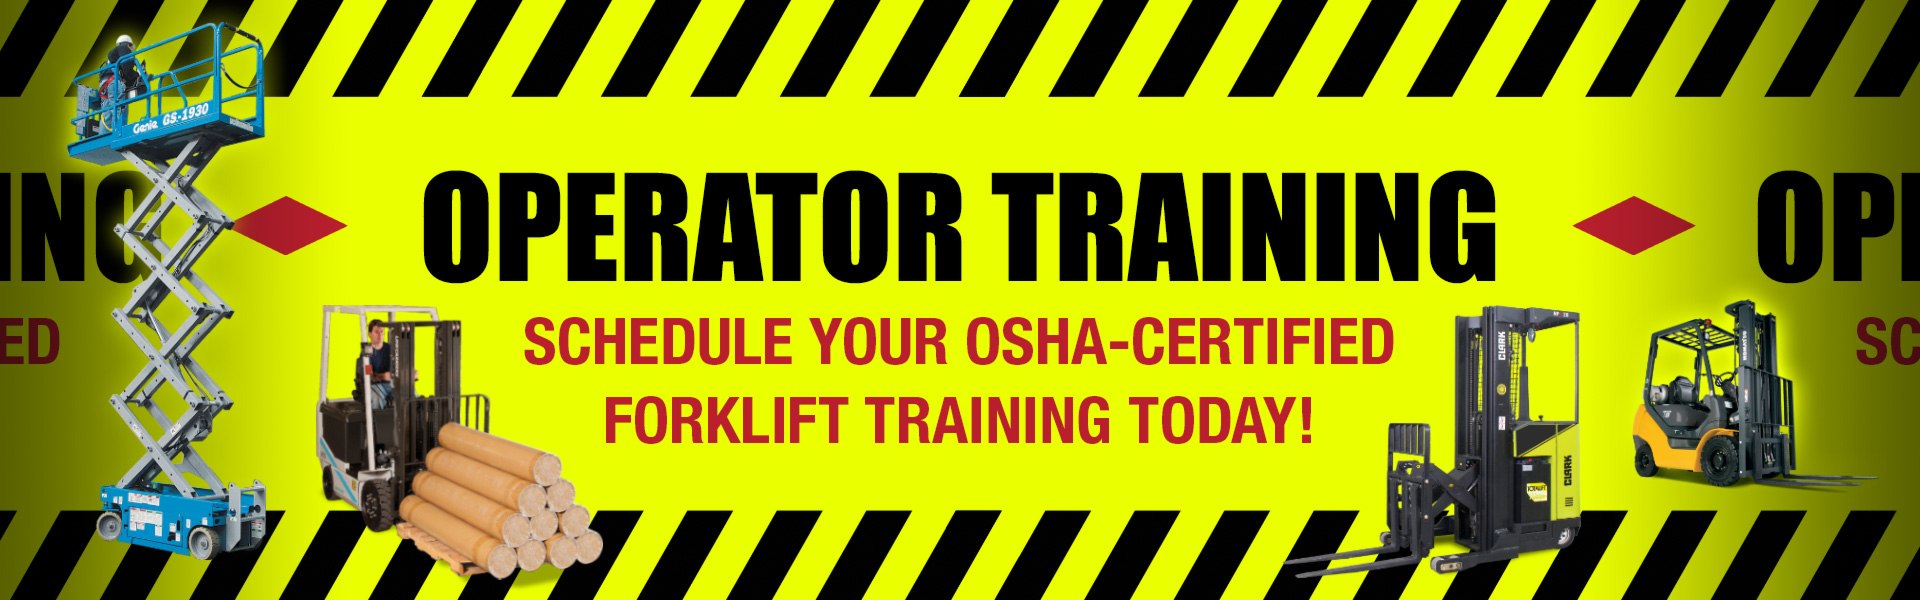 Operator Safety Training - Schedule your OSHA-certified forklift operator training today.